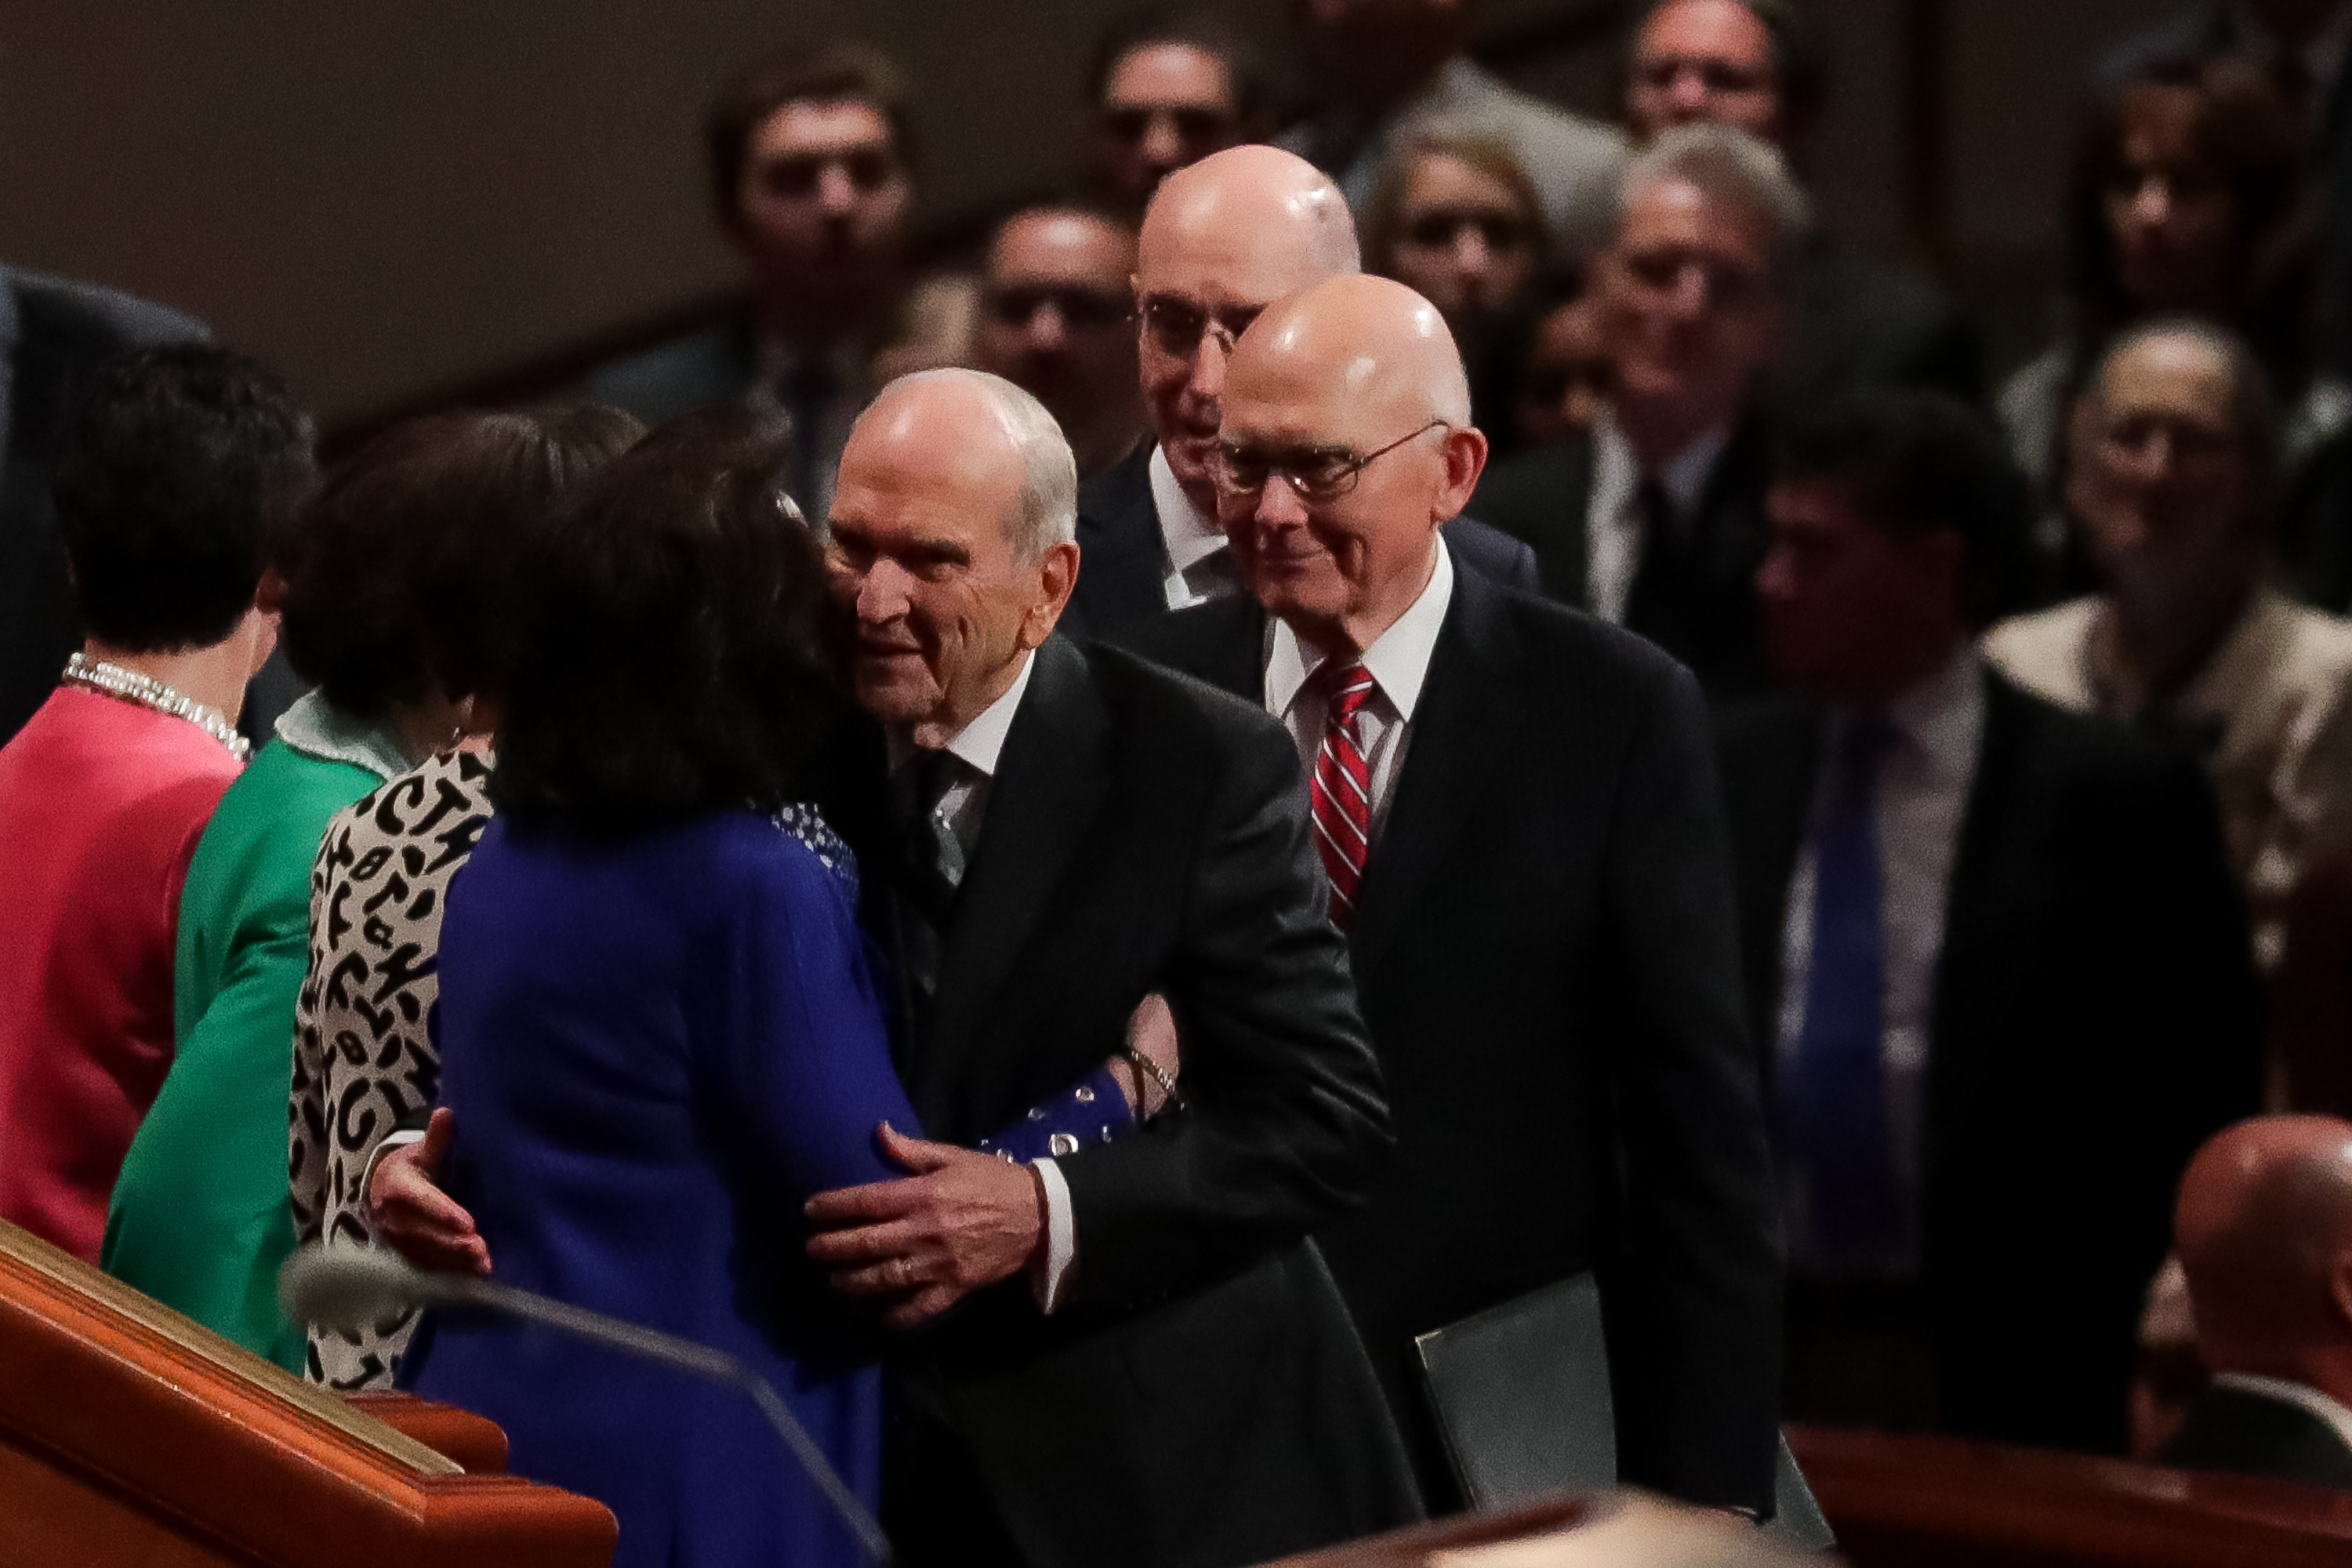 General authorities arrive for the Saturday morning session of the 188th Semiannual General Conference of The Church of Jesus Christ of Latter-day Saints in the Conference Center in Salt Lake City on Saturday, Oct. 6, 2018.